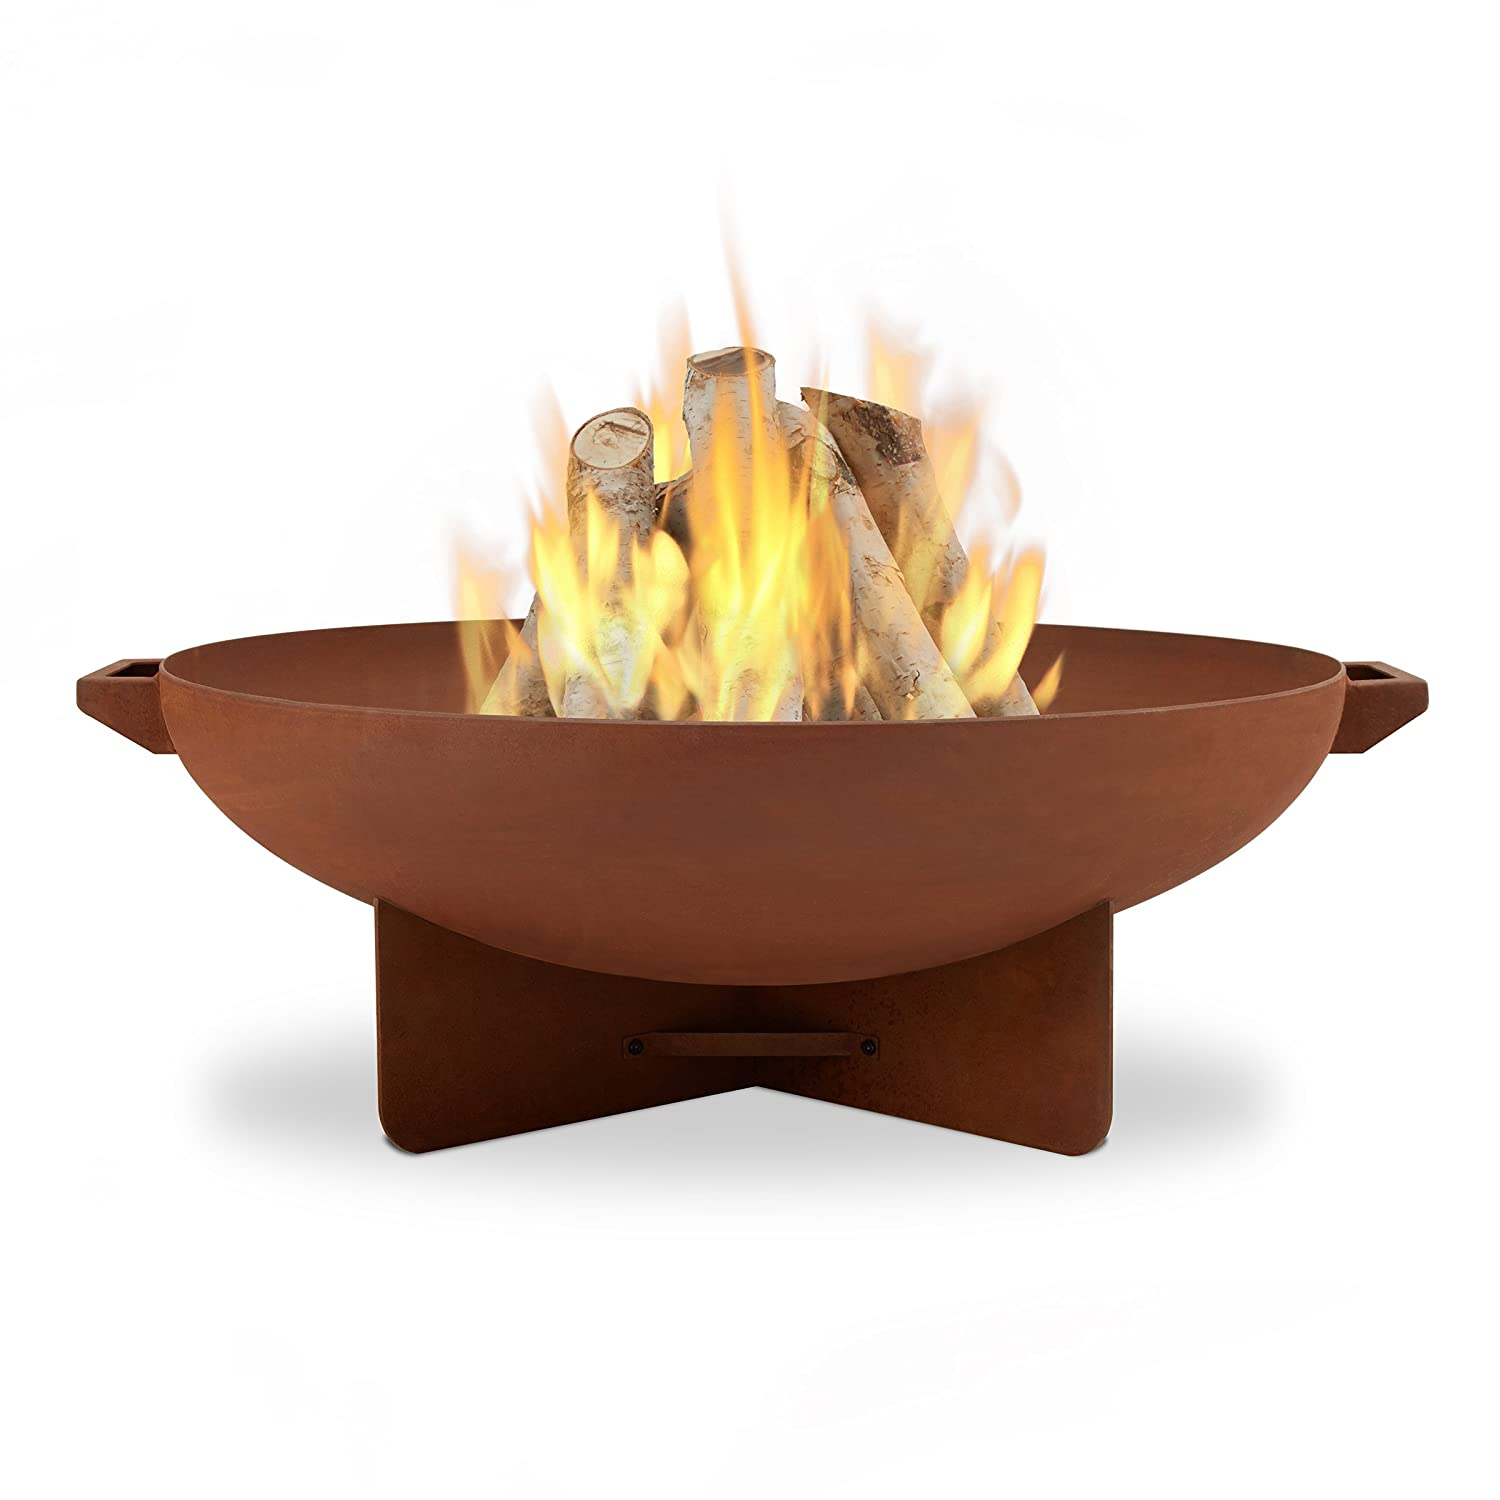 Char Broil Trentino Deluxe Outdoor Fireplace ~ usrmanual.com